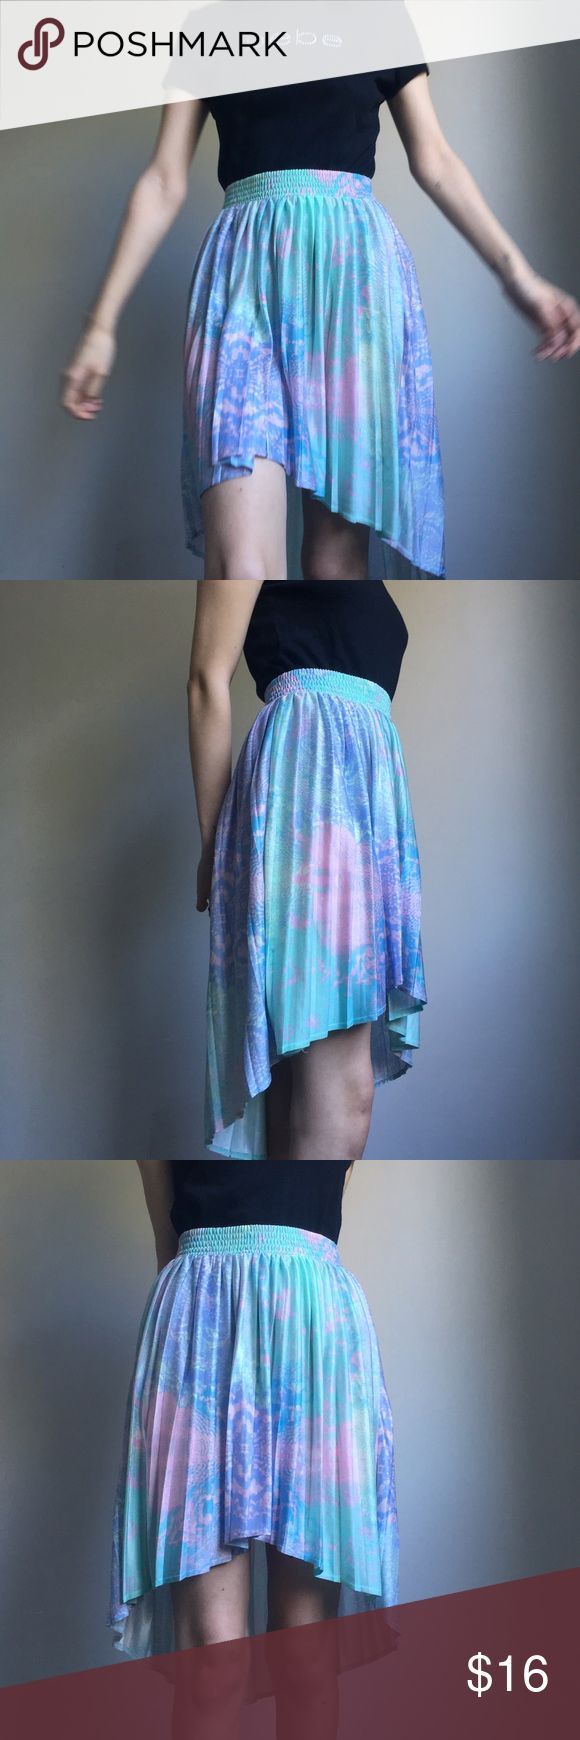 TOPSHOP Skirt topshop pastel hi-lo skirt ⭐️ beautiful colors in a super cool trippy pattern! has a sheen to it. size 4 and fits true but elastic waistband can accommodate for slightly bigger or smaller sizes. let me know if u have any questions ✨ Topshop Skirts High Low